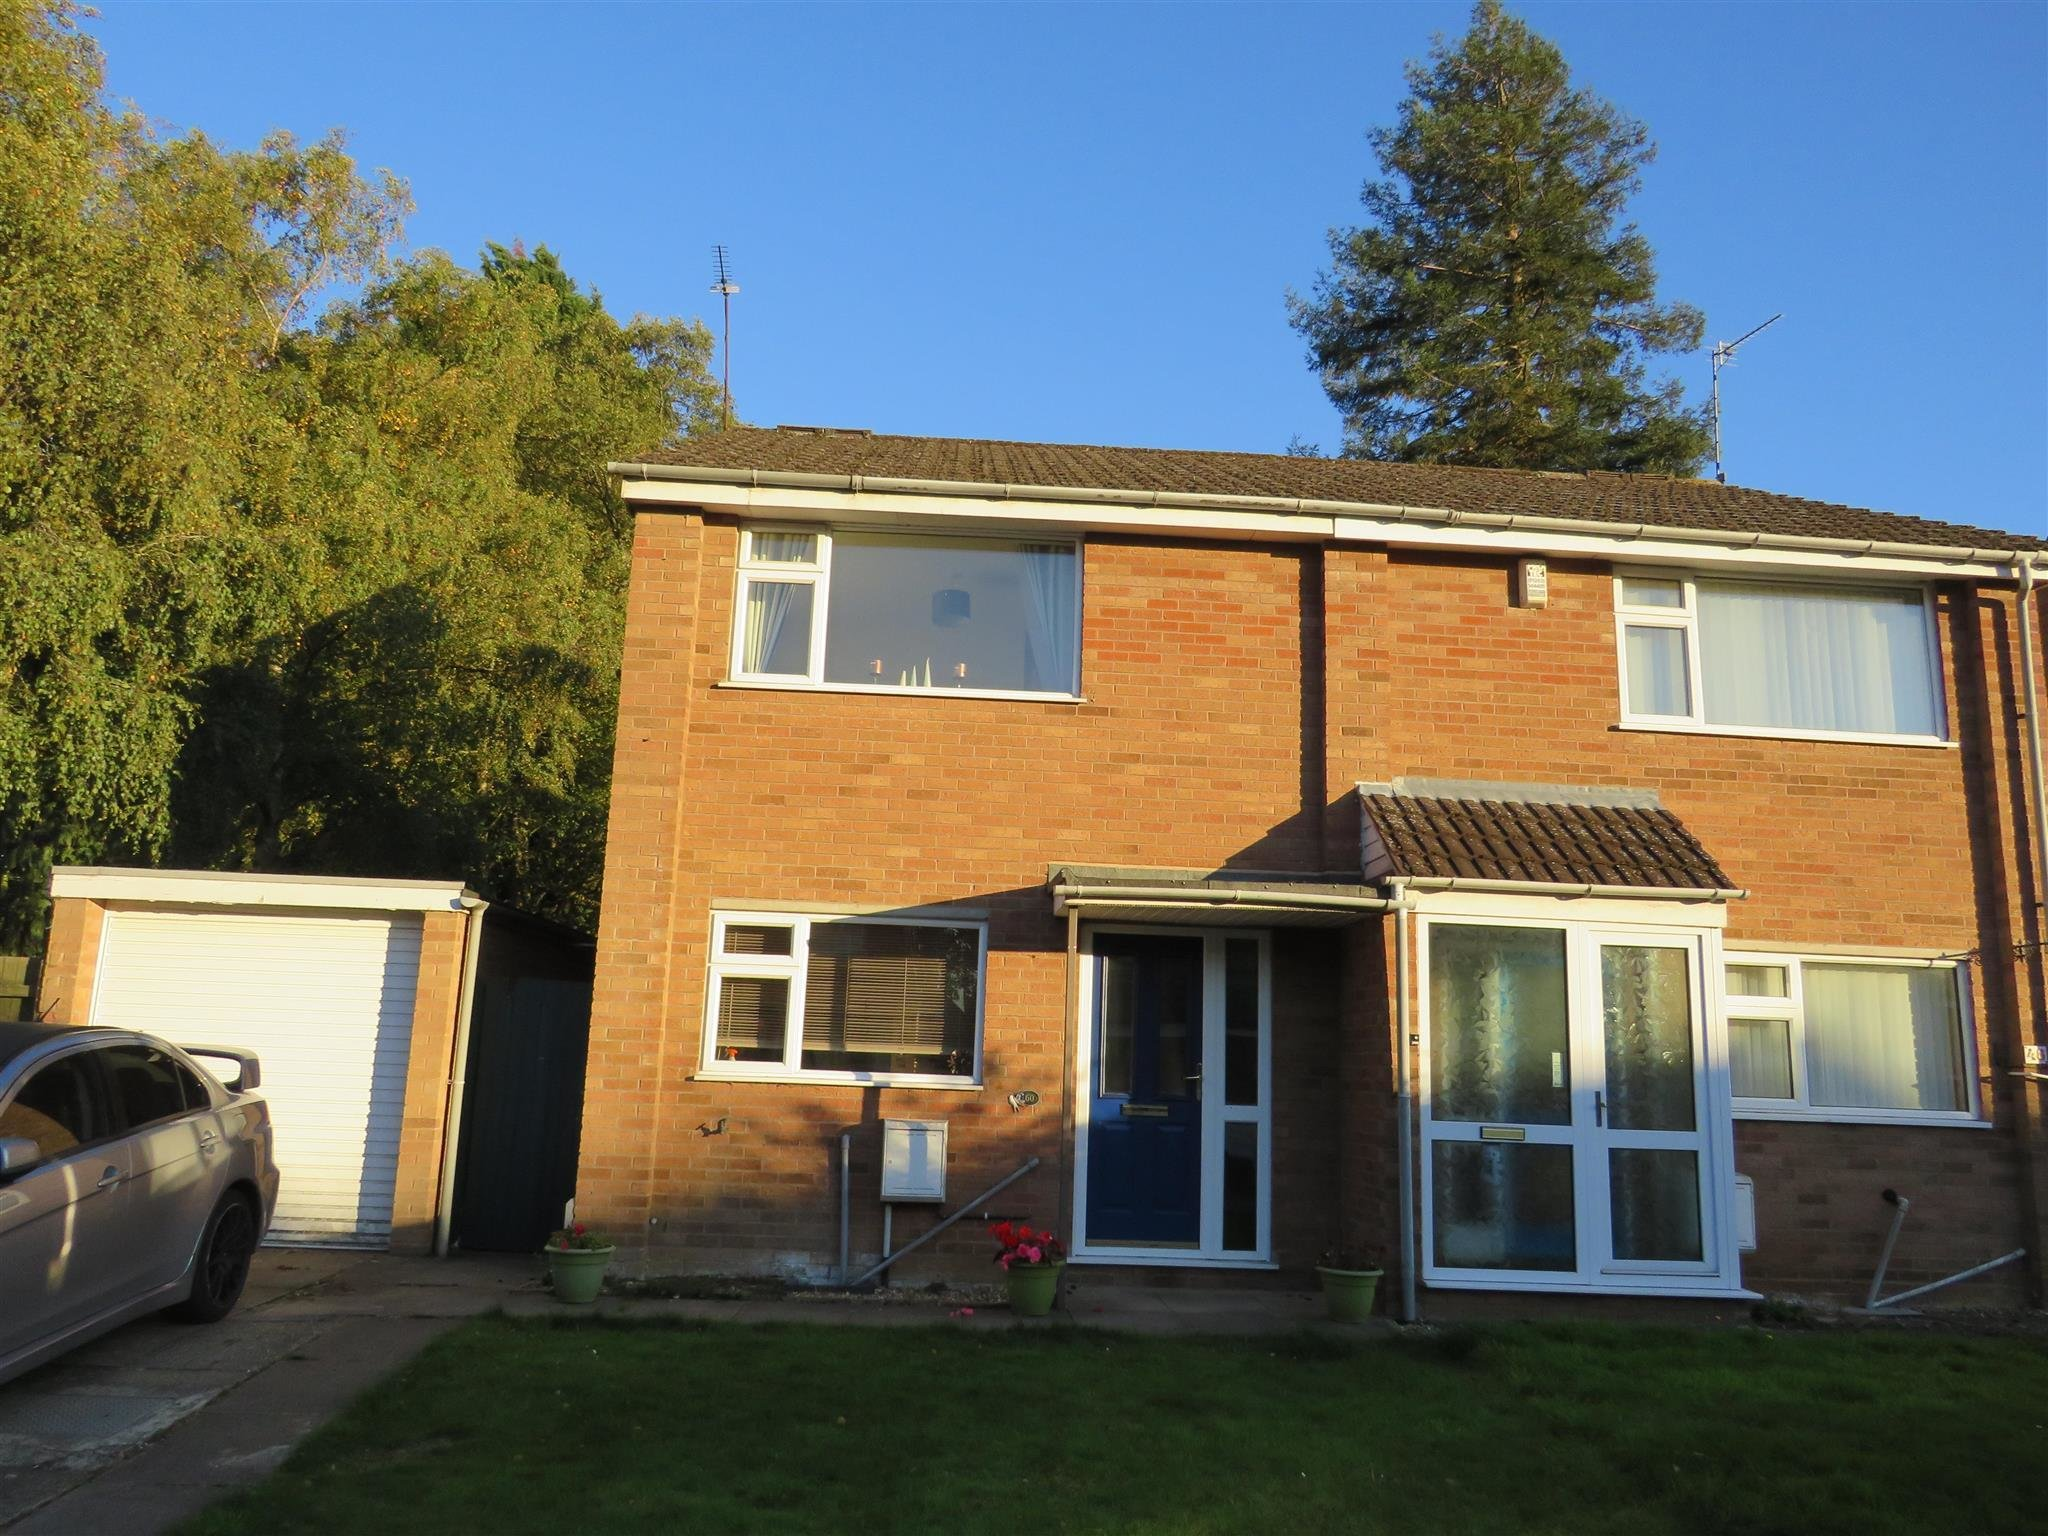 Best Spicer Place Rugby Cv22 3 Bed House Cv22 7Ea £850 With Pictures